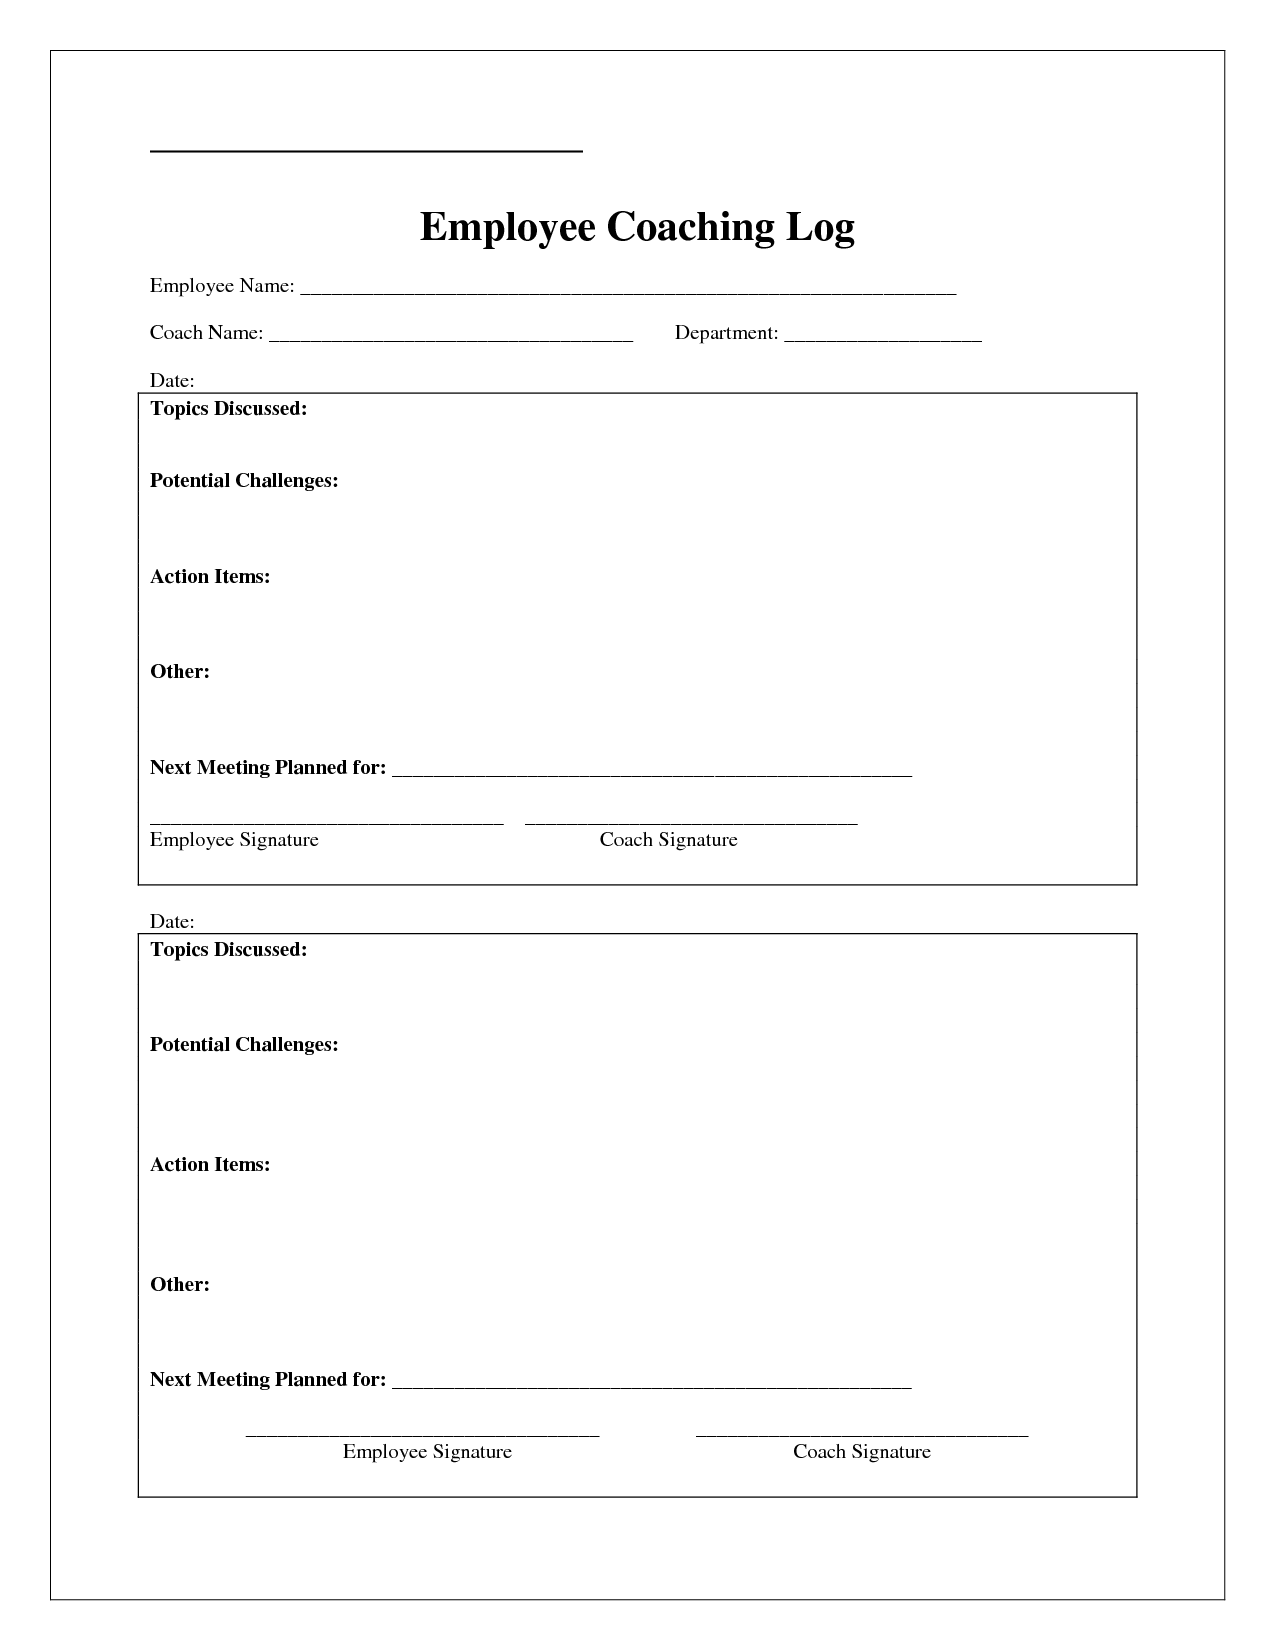 Coaching Log Template